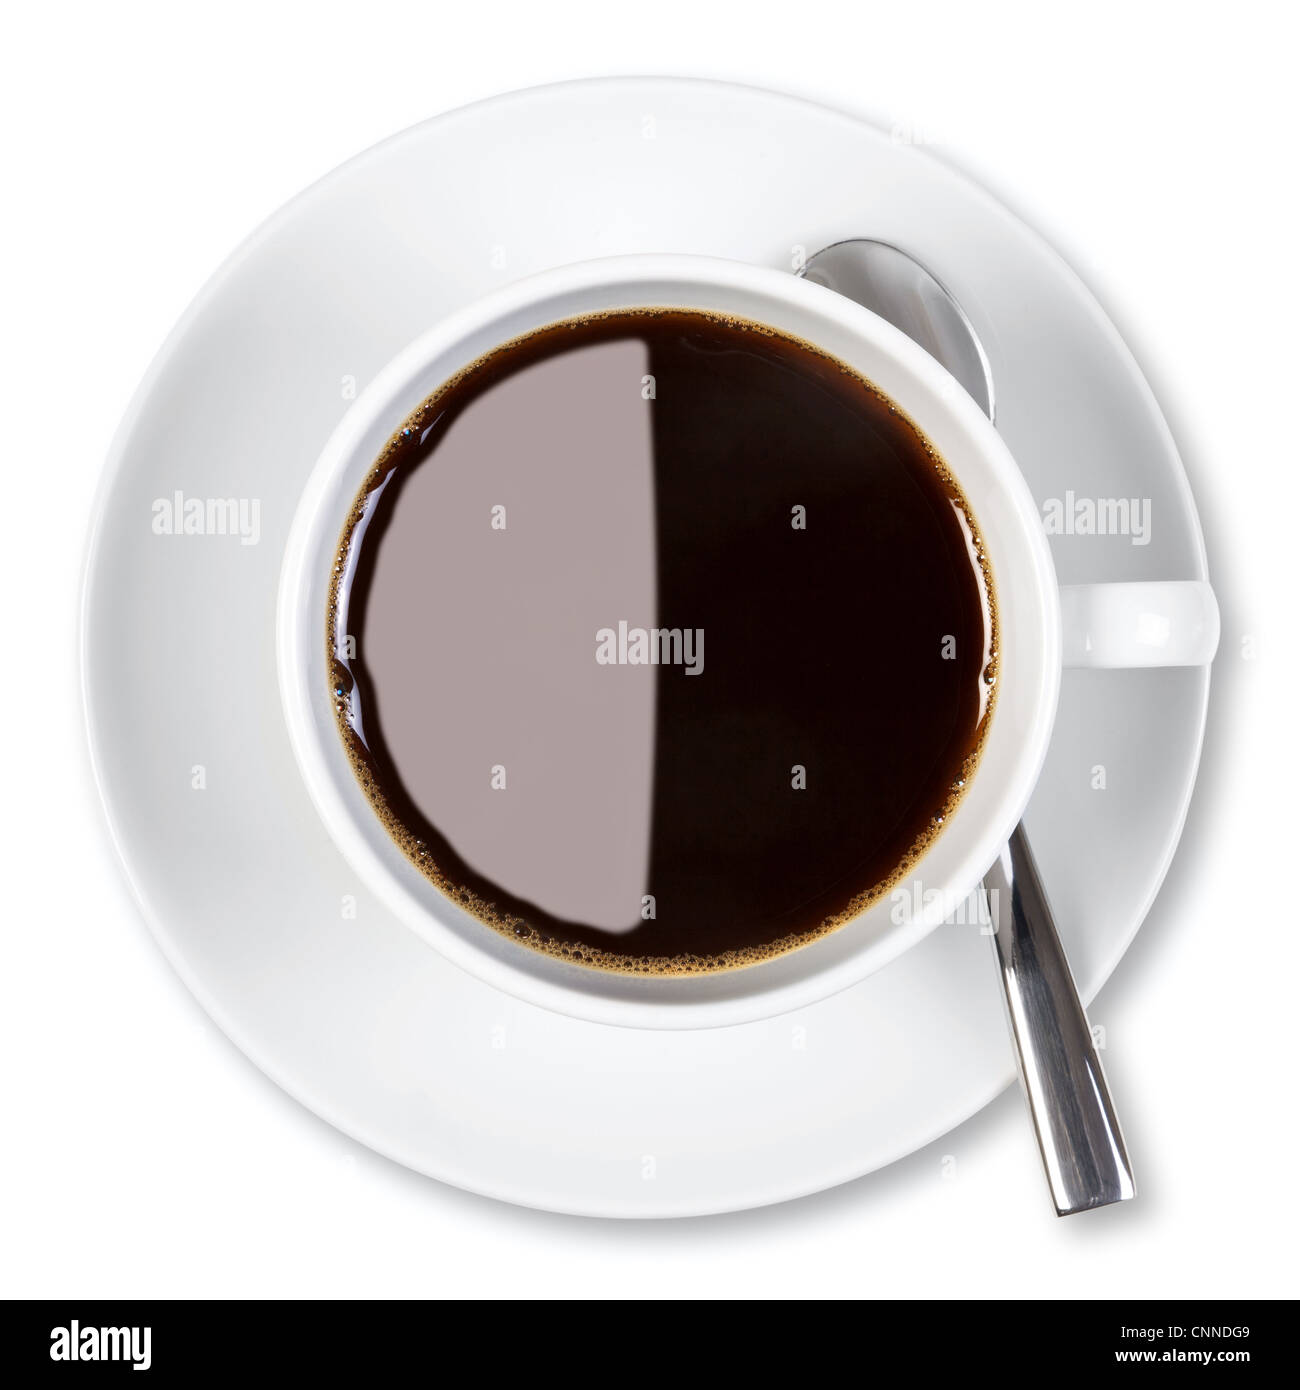 Overhead photo of a cup of black coffee, isolated on a white background with clipping path. - Stock Image